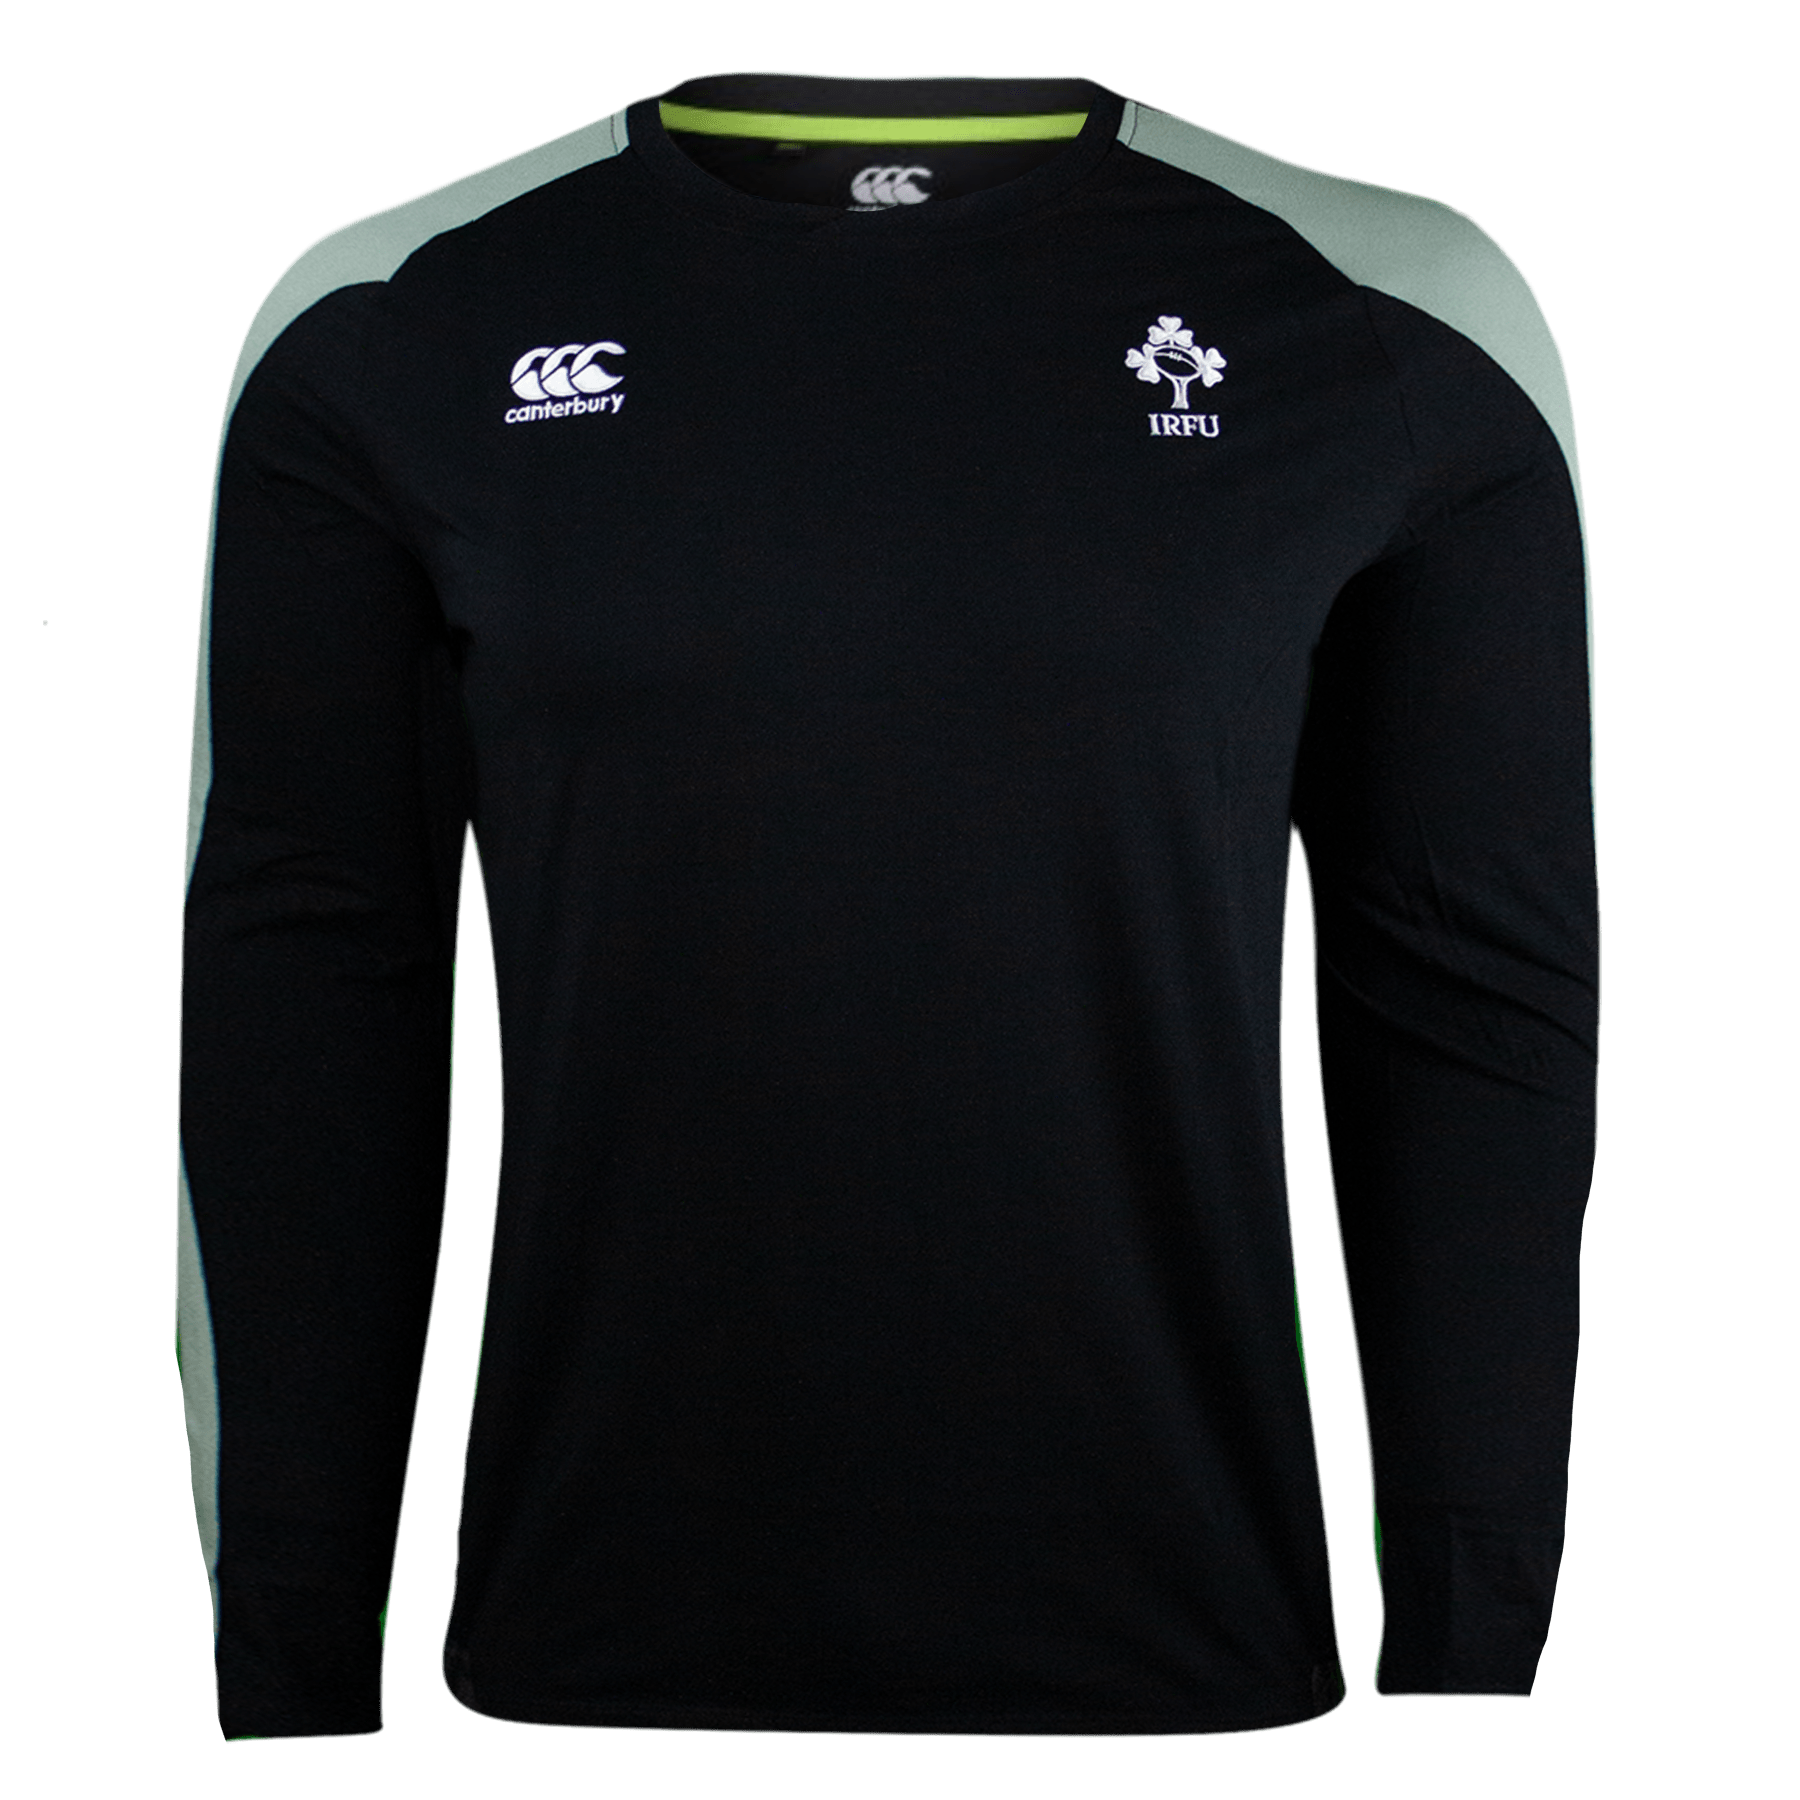 Canterbury Ireland Rugby L/S Black Cotton T-shirt